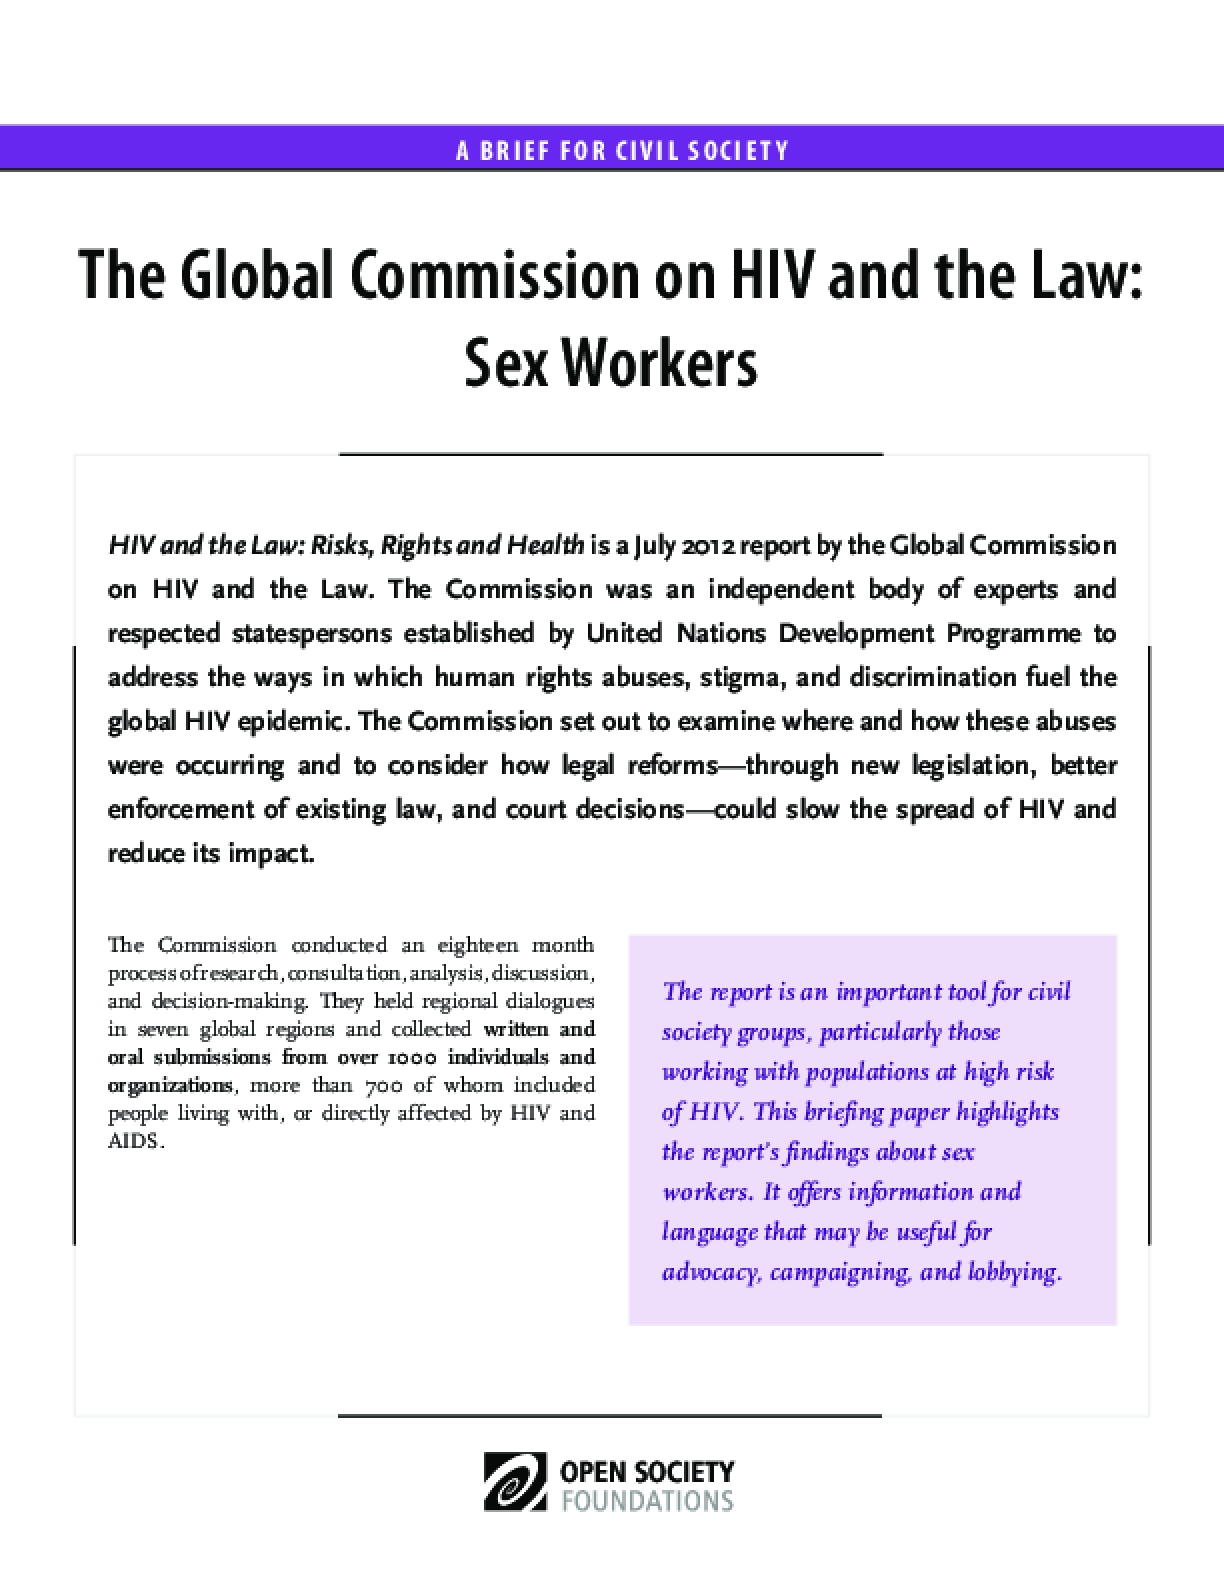 HIV and the Law: Sex Workers